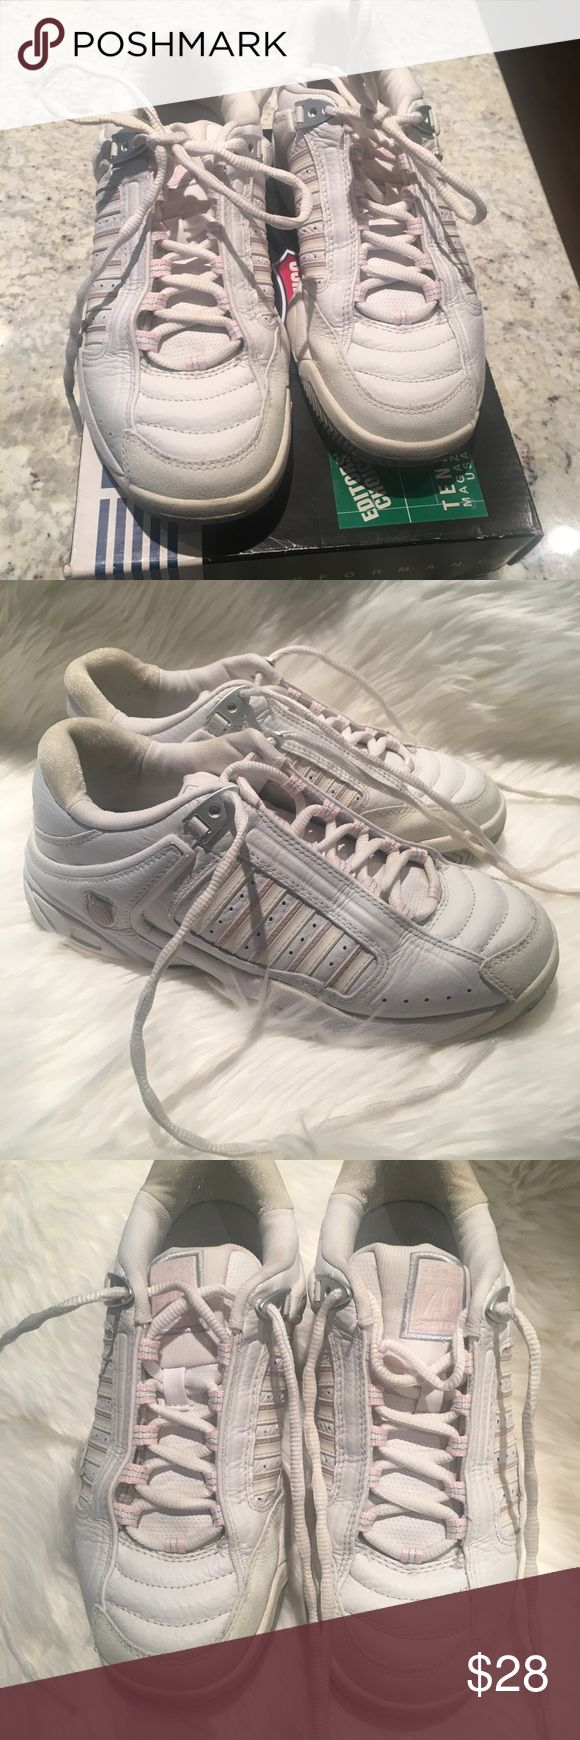 k-Swiss Tennis shoes🎾 Women's KSwiss Performance Tennis shoes, size 7.5,  white and Ice pink Tennis shoes, still a lot of use left, only worn a few times, just sat in box in closet, a little discolored  but nothing major.  Please see all pictures and ask any questions. Open to offers! K-Swiss Shoes Sneakers